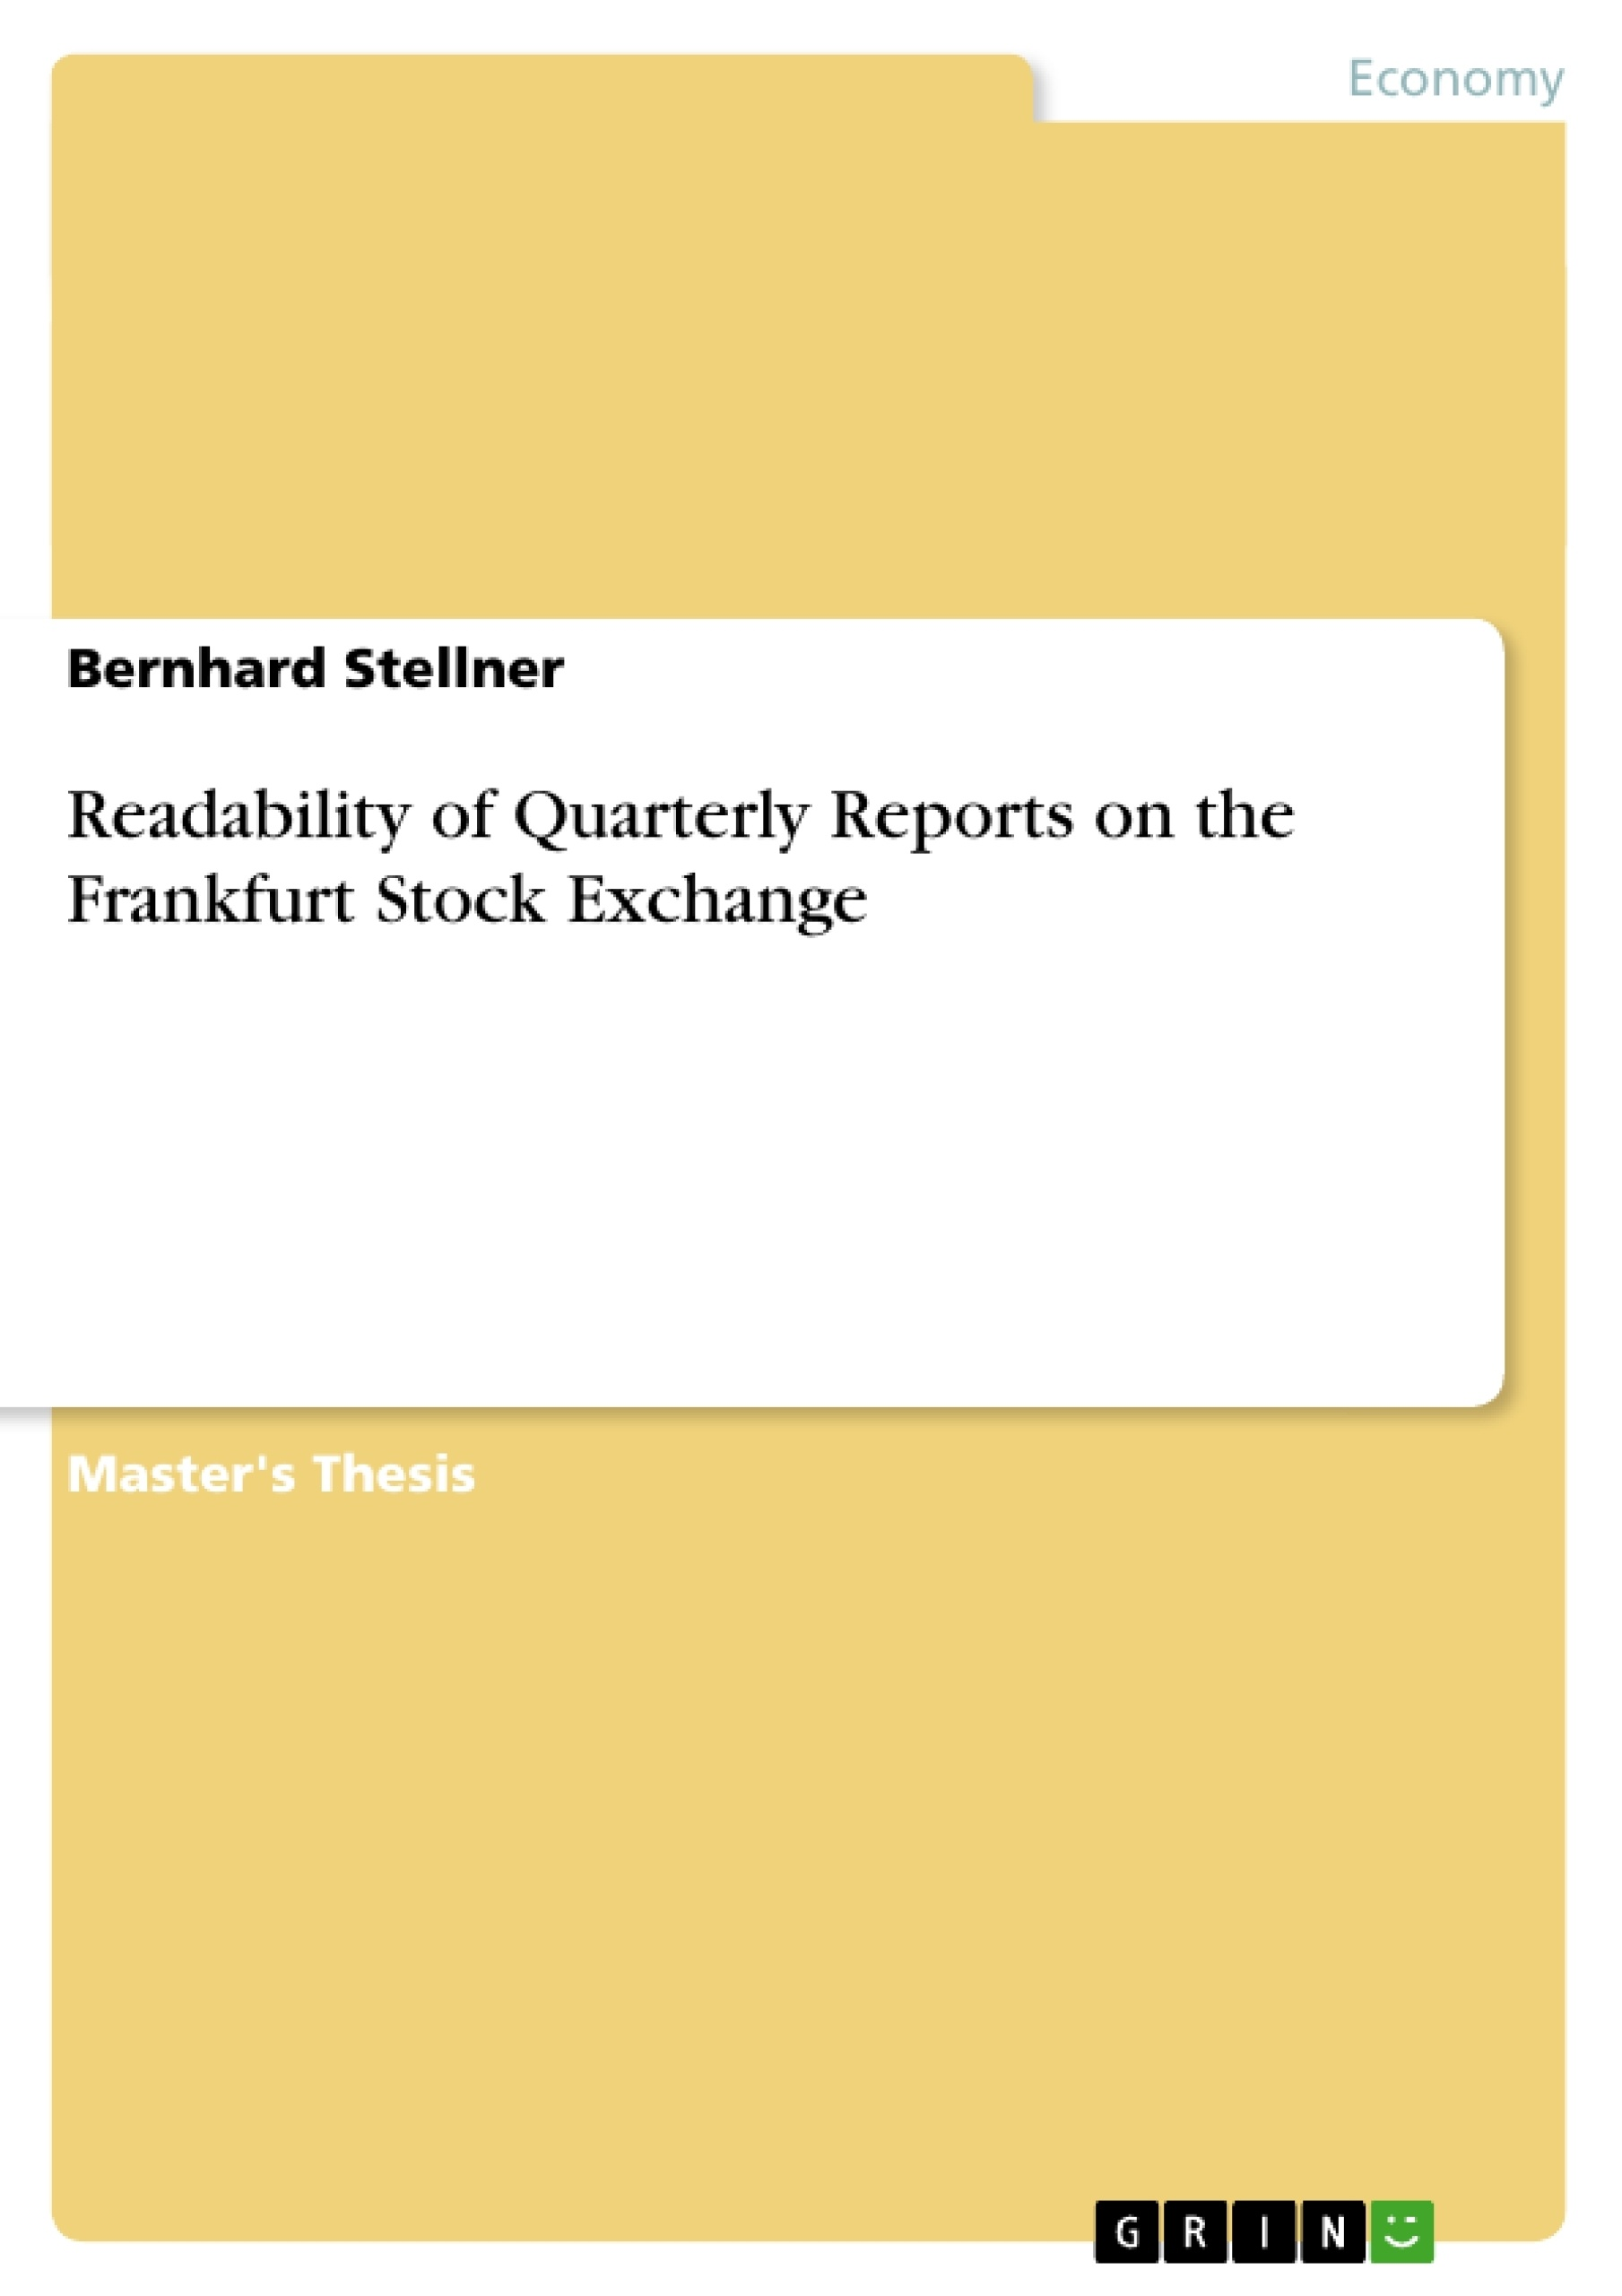 Title: Readability of Quarterly Reports on the Frankfurt Stock Exchange